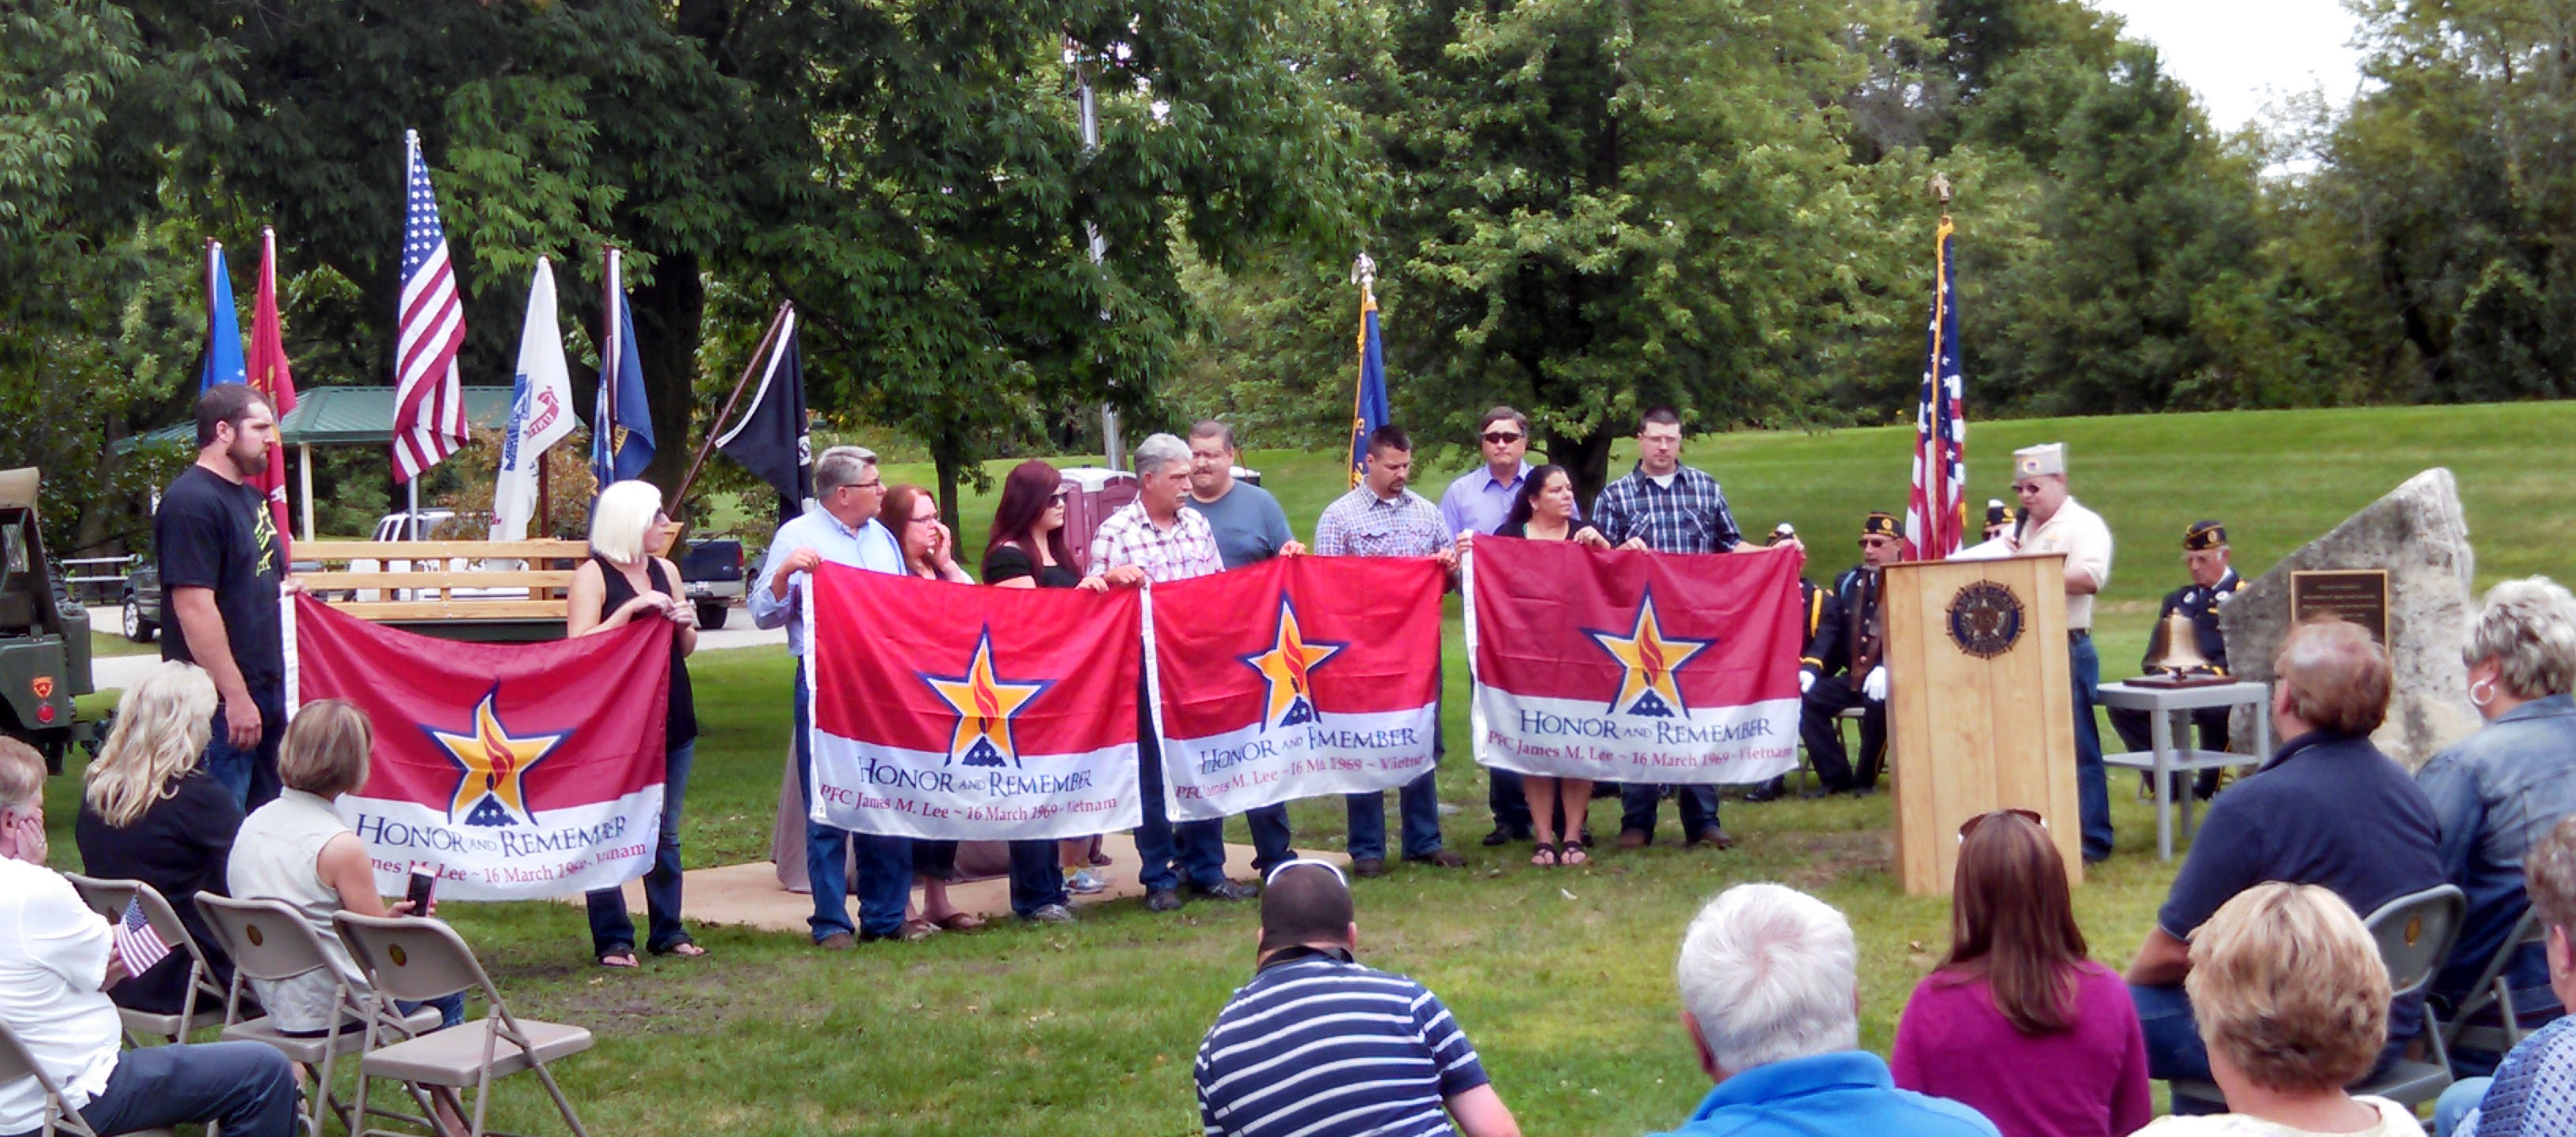 8 29 15 Lee Memorial Dedication 5